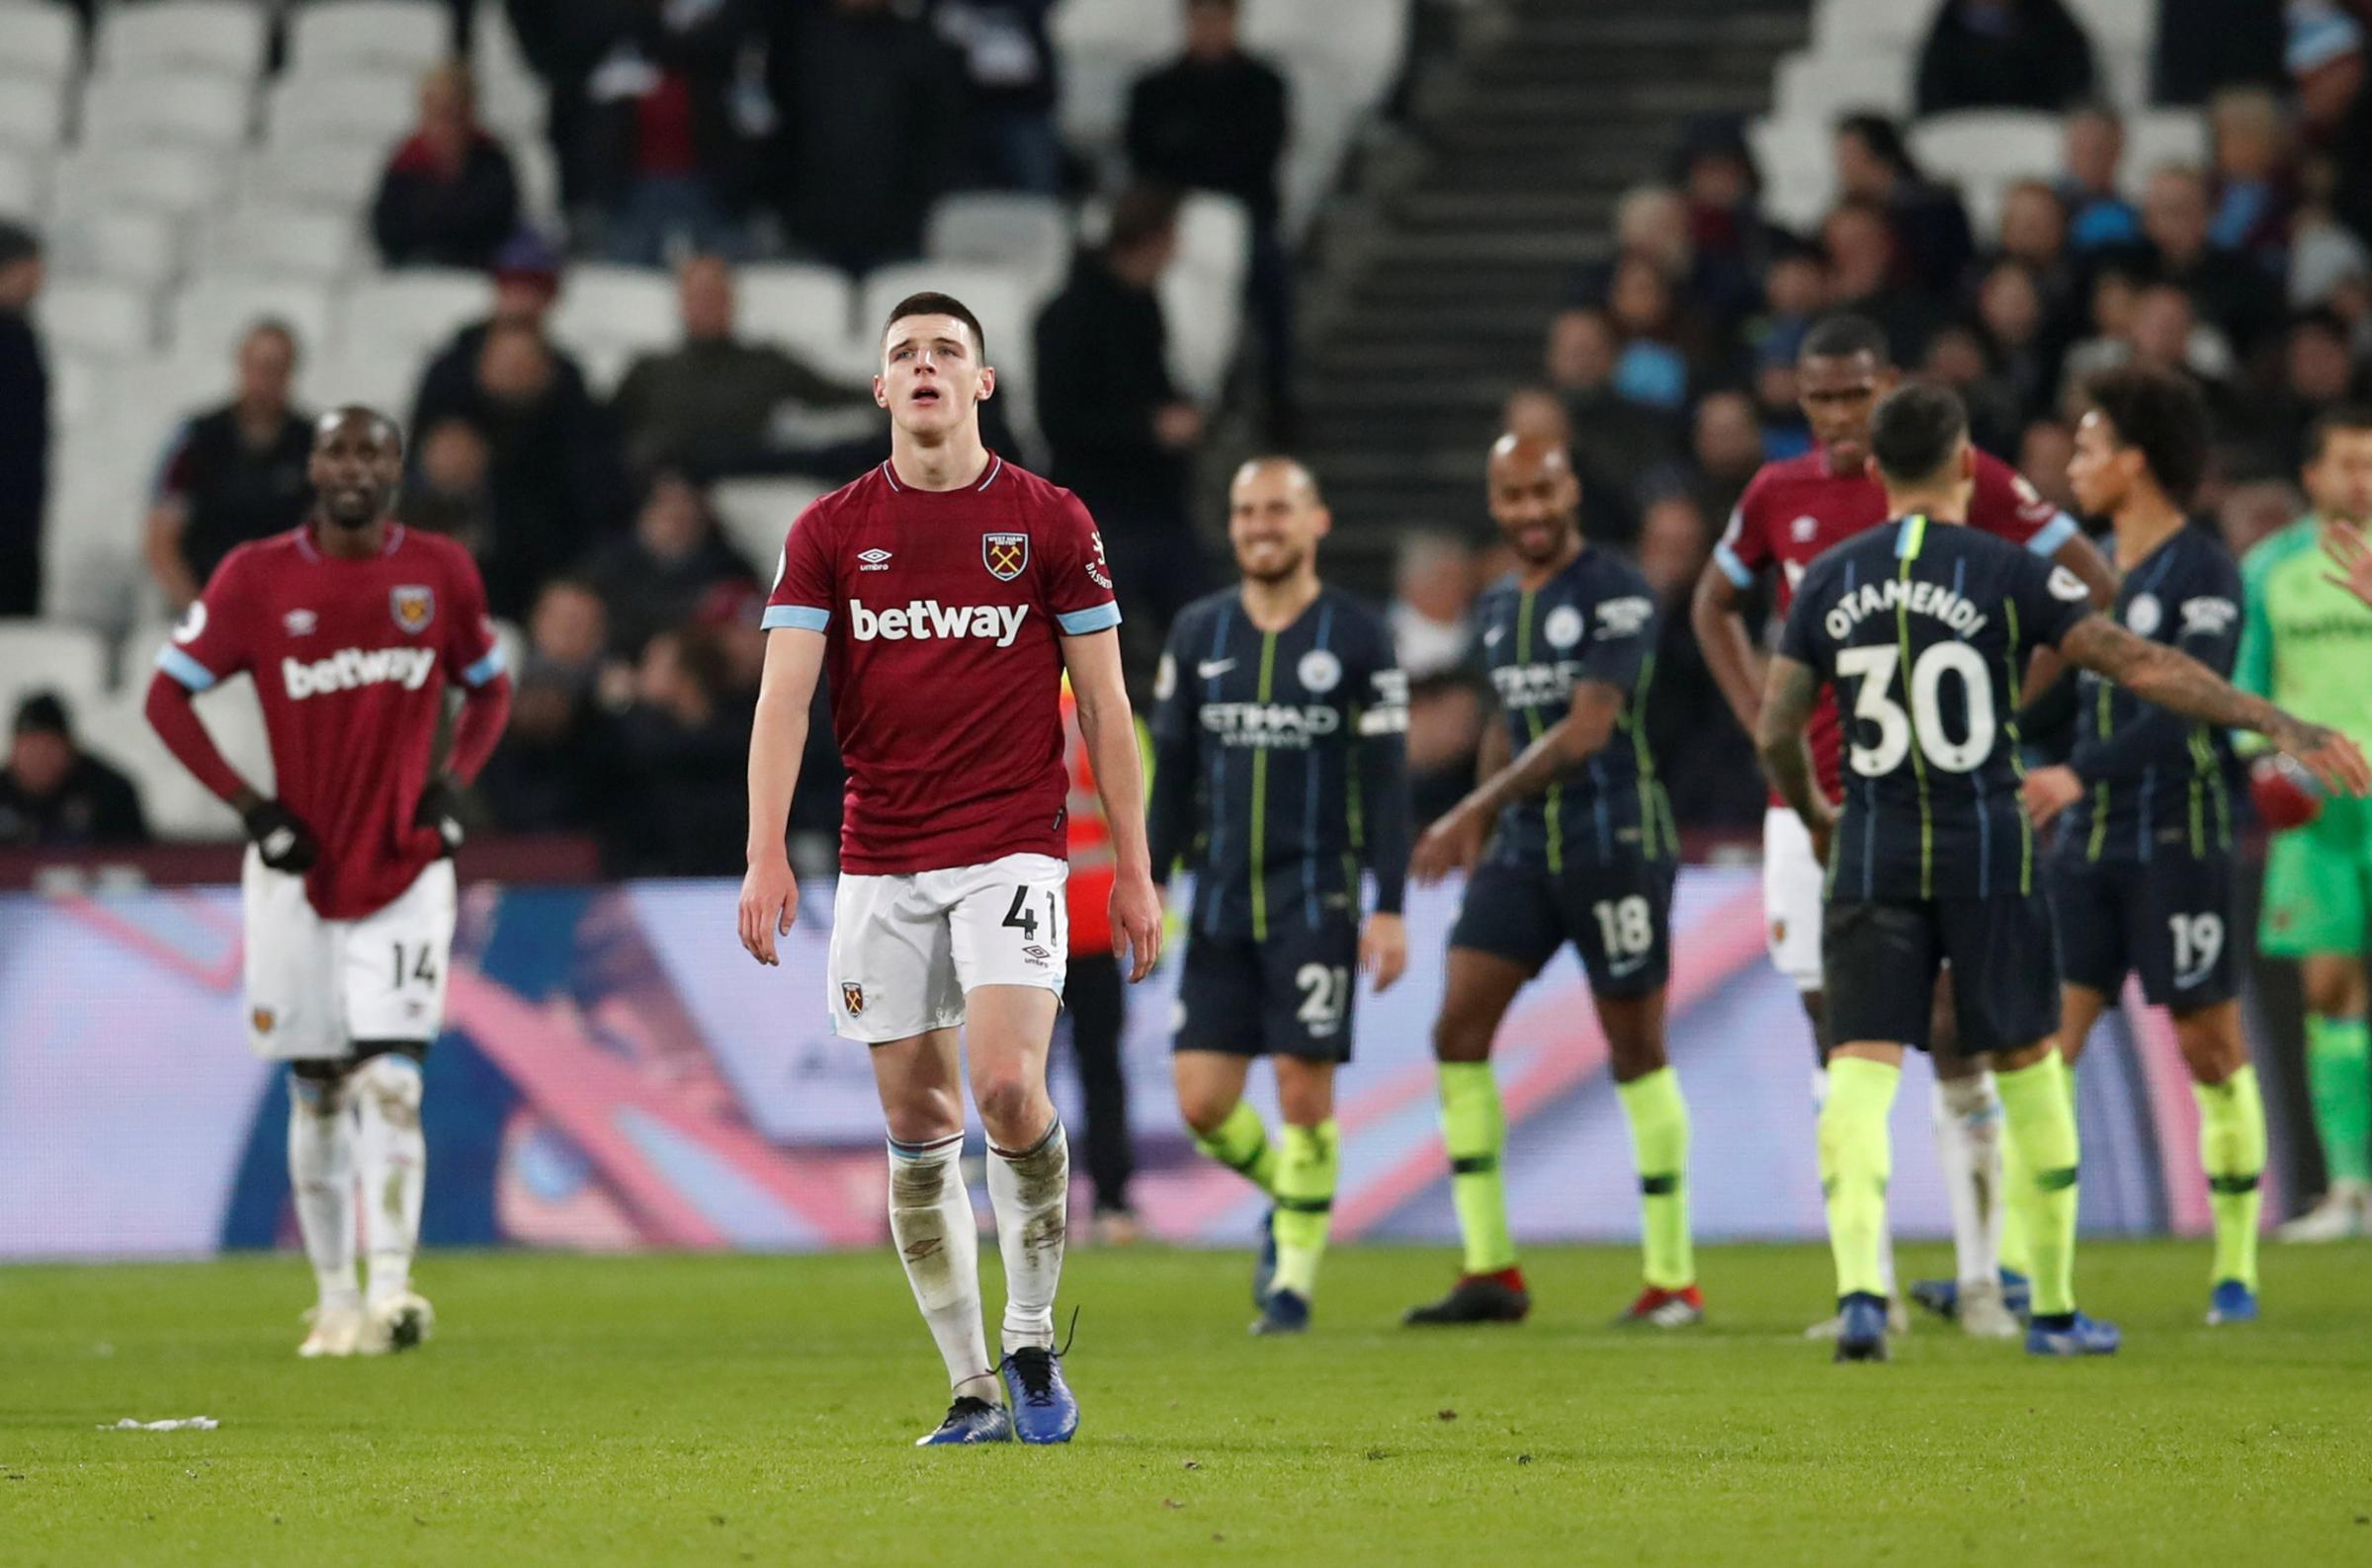 A dejected Declan Rice after Manchester City's fourth goal. Picture: Action Images